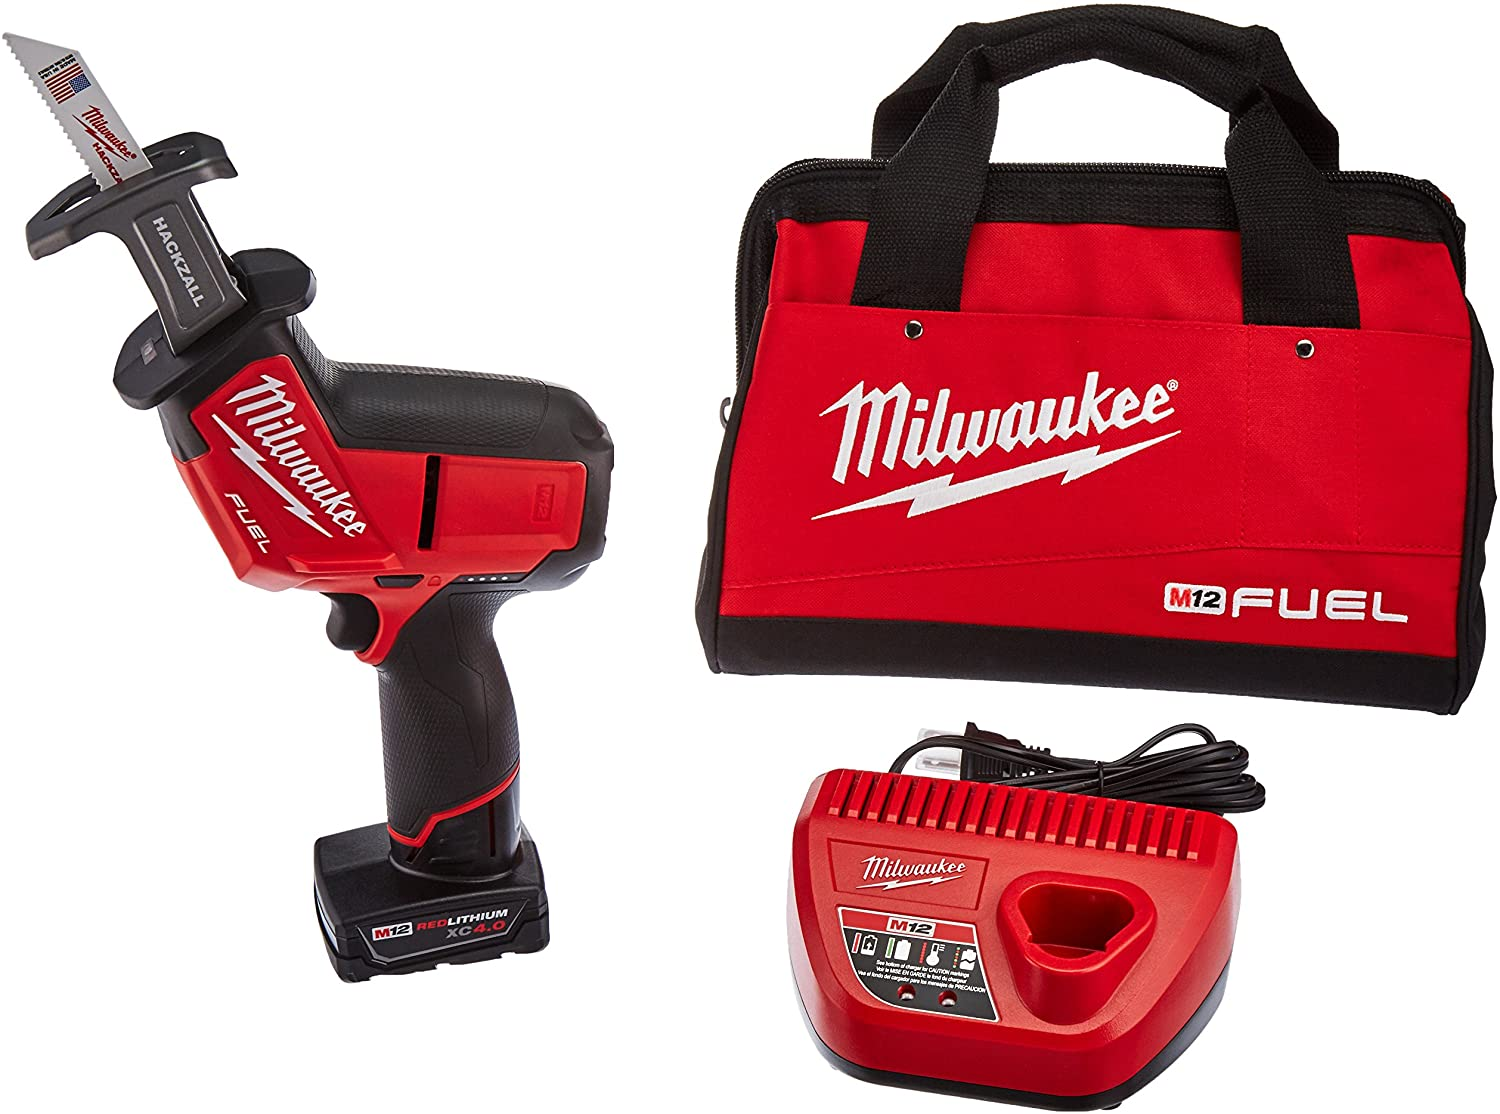 MILWAUKEE'S Electric San Francisco Mall Tool Sales for sale 2520-21XC Kit Hackzall M12 Saw